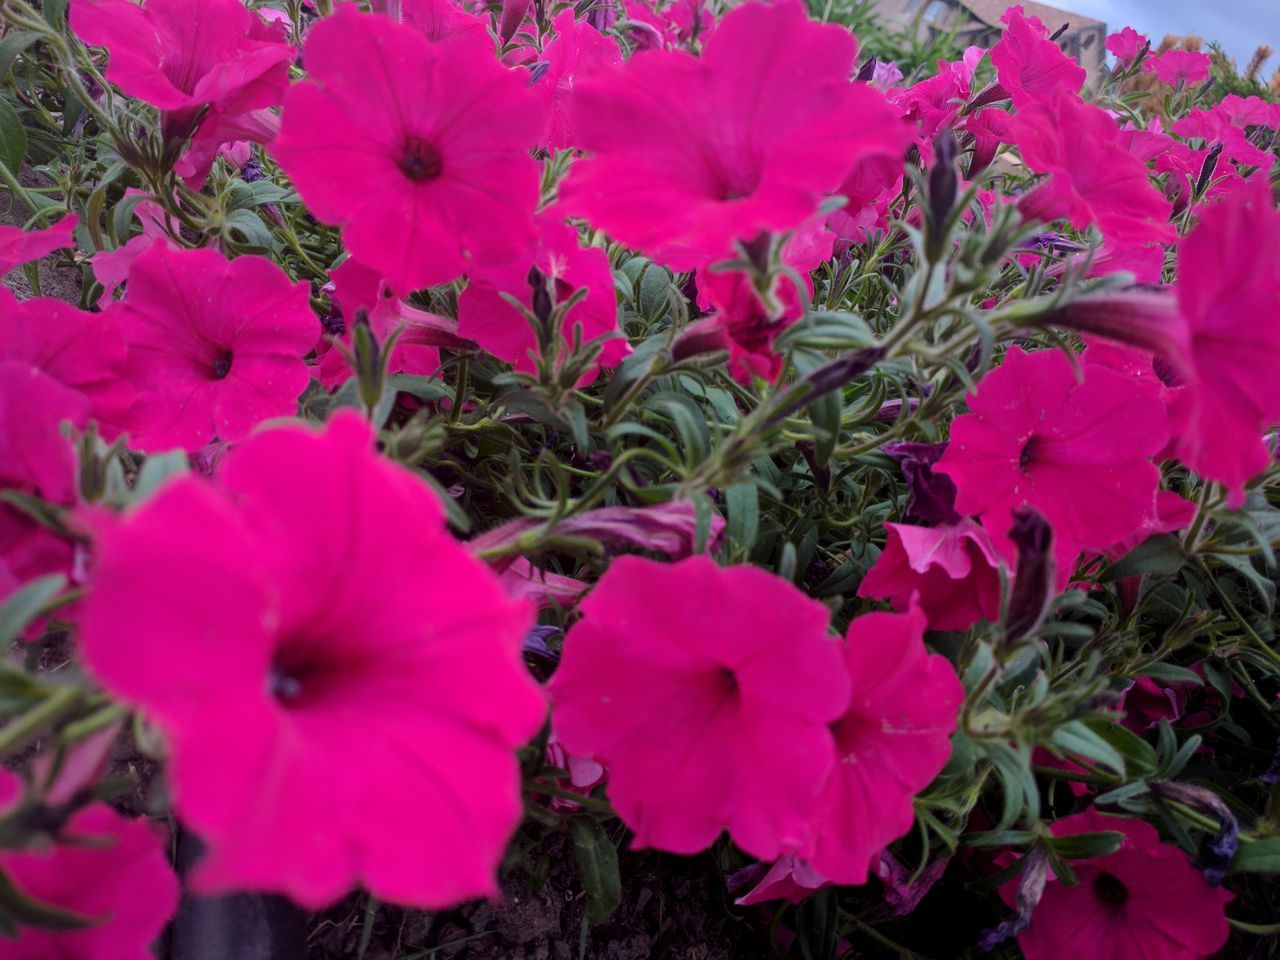 flower, growth, petal, plant, nature, fragility, beauty in nature, flower head, no people, blooming, outdoors, freshness, day, close-up, petunia